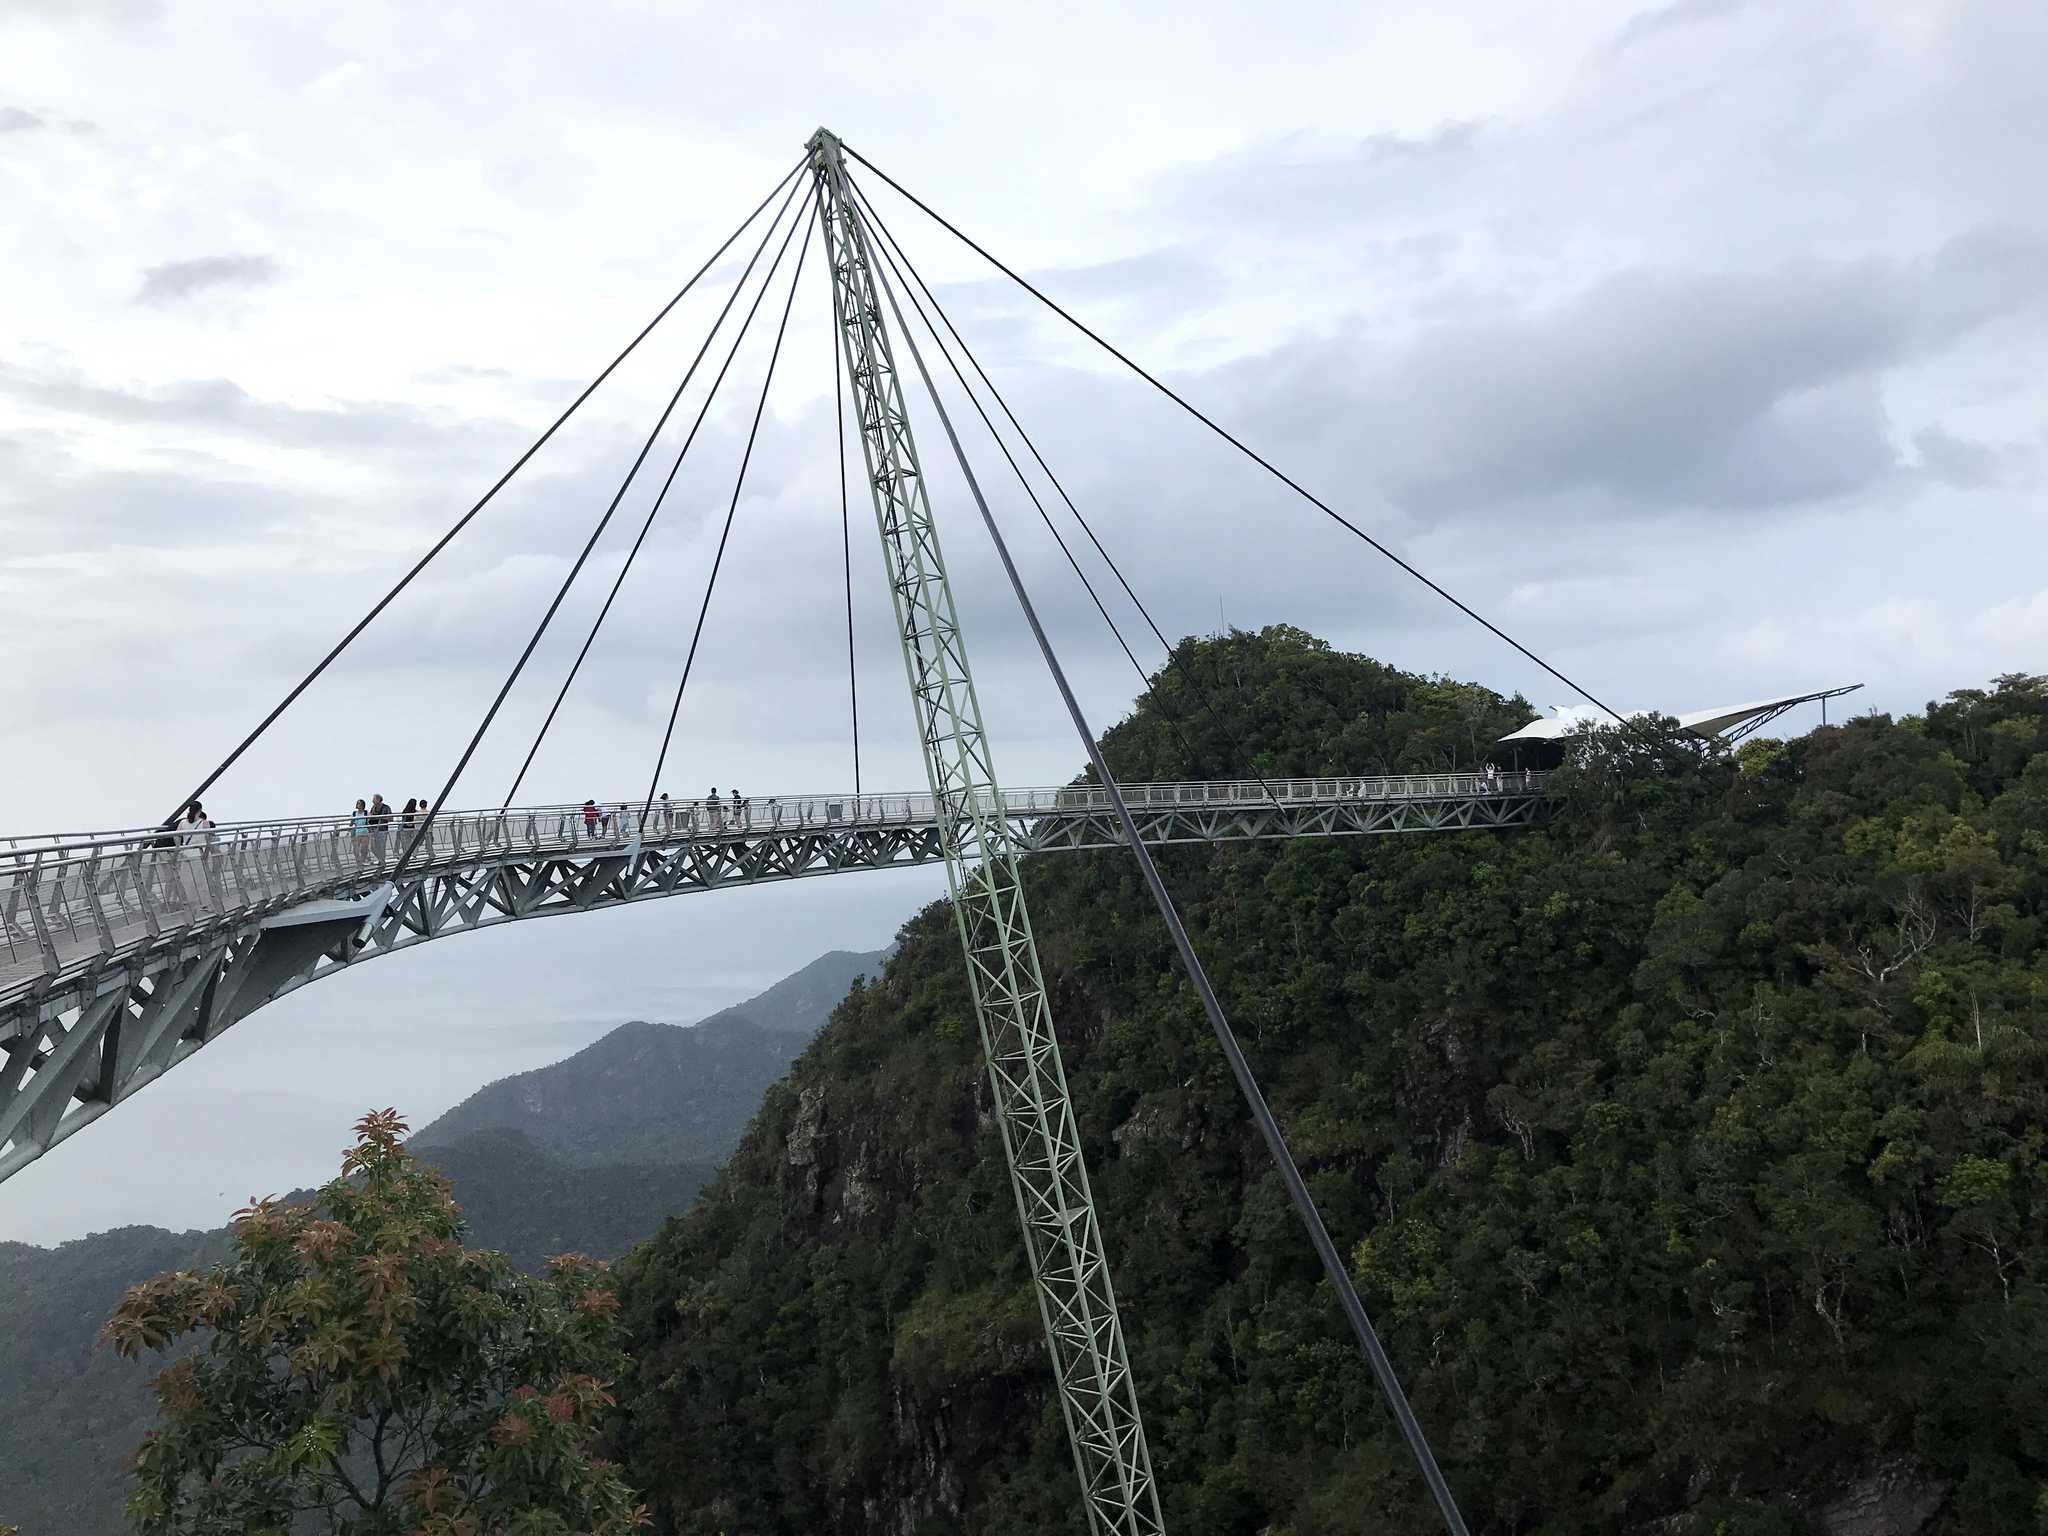 Longest single point suspension bridge, Langkawi